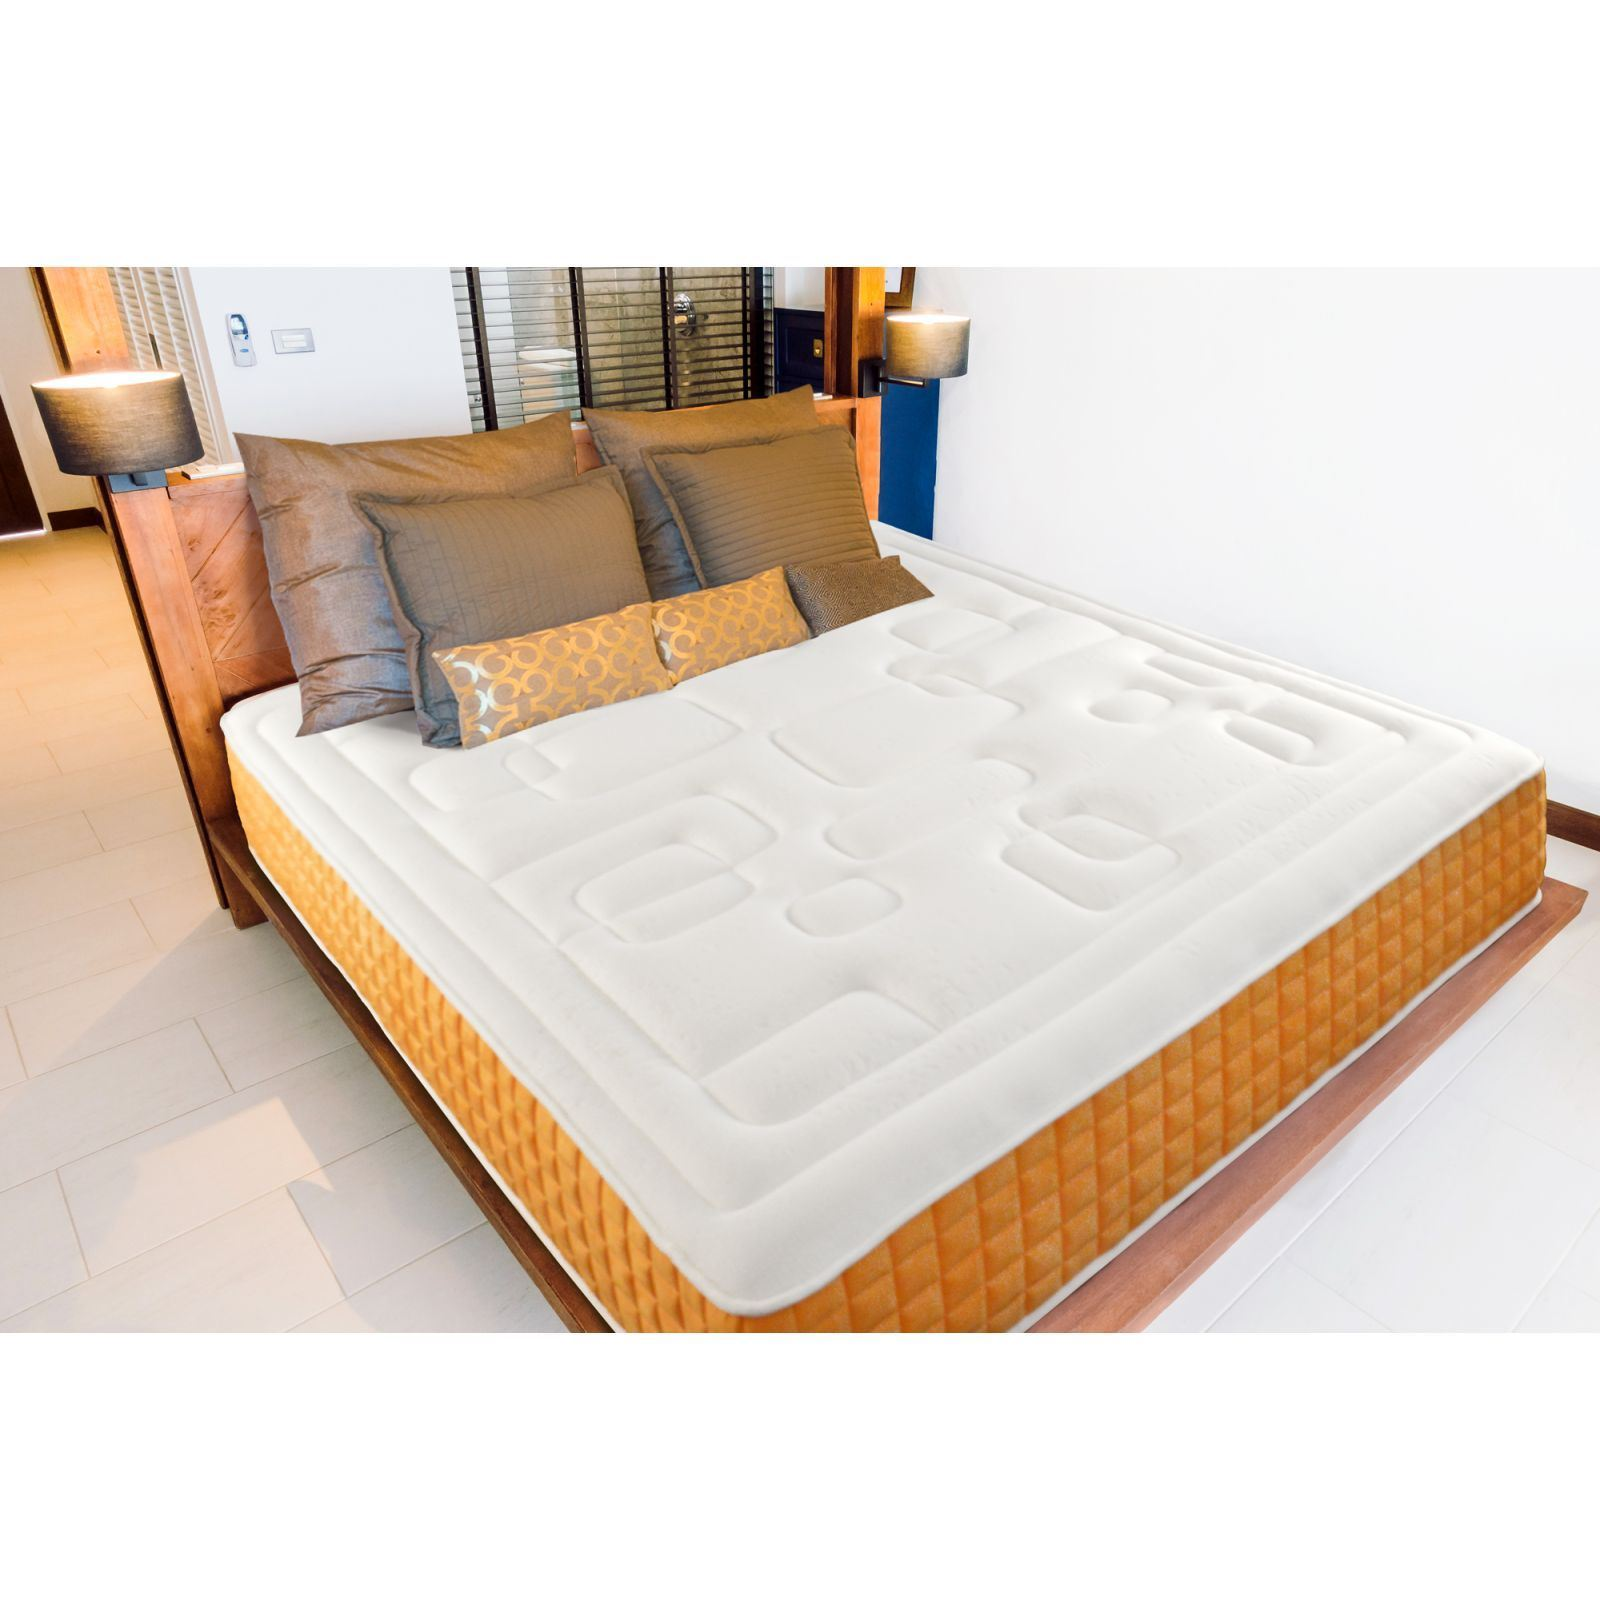 dodo matelas affordable dstockage dodo auchan with dodo. Black Bedroom Furniture Sets. Home Design Ideas